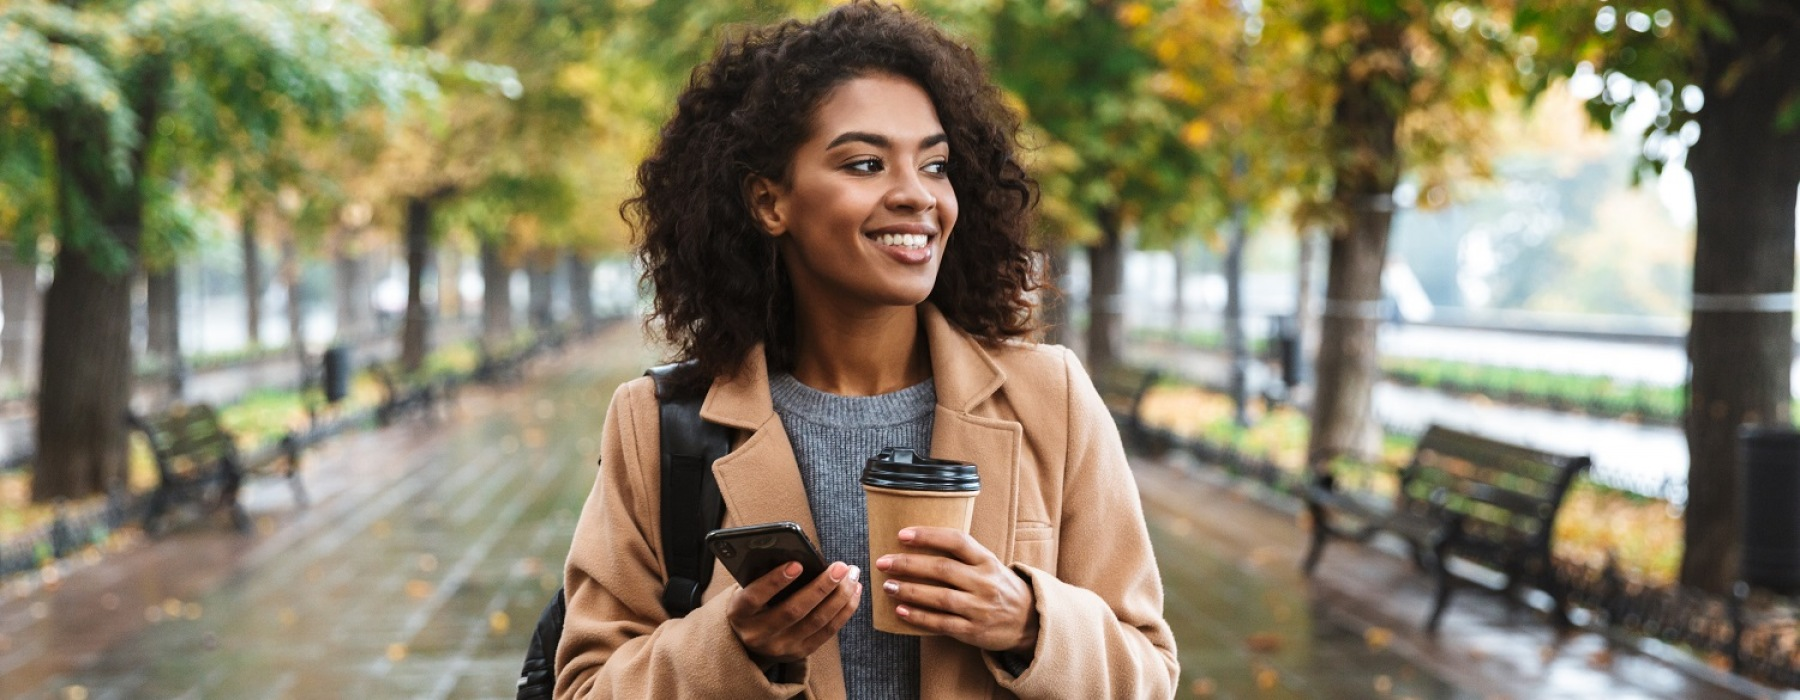 Woman walking in Park holding her Coffee